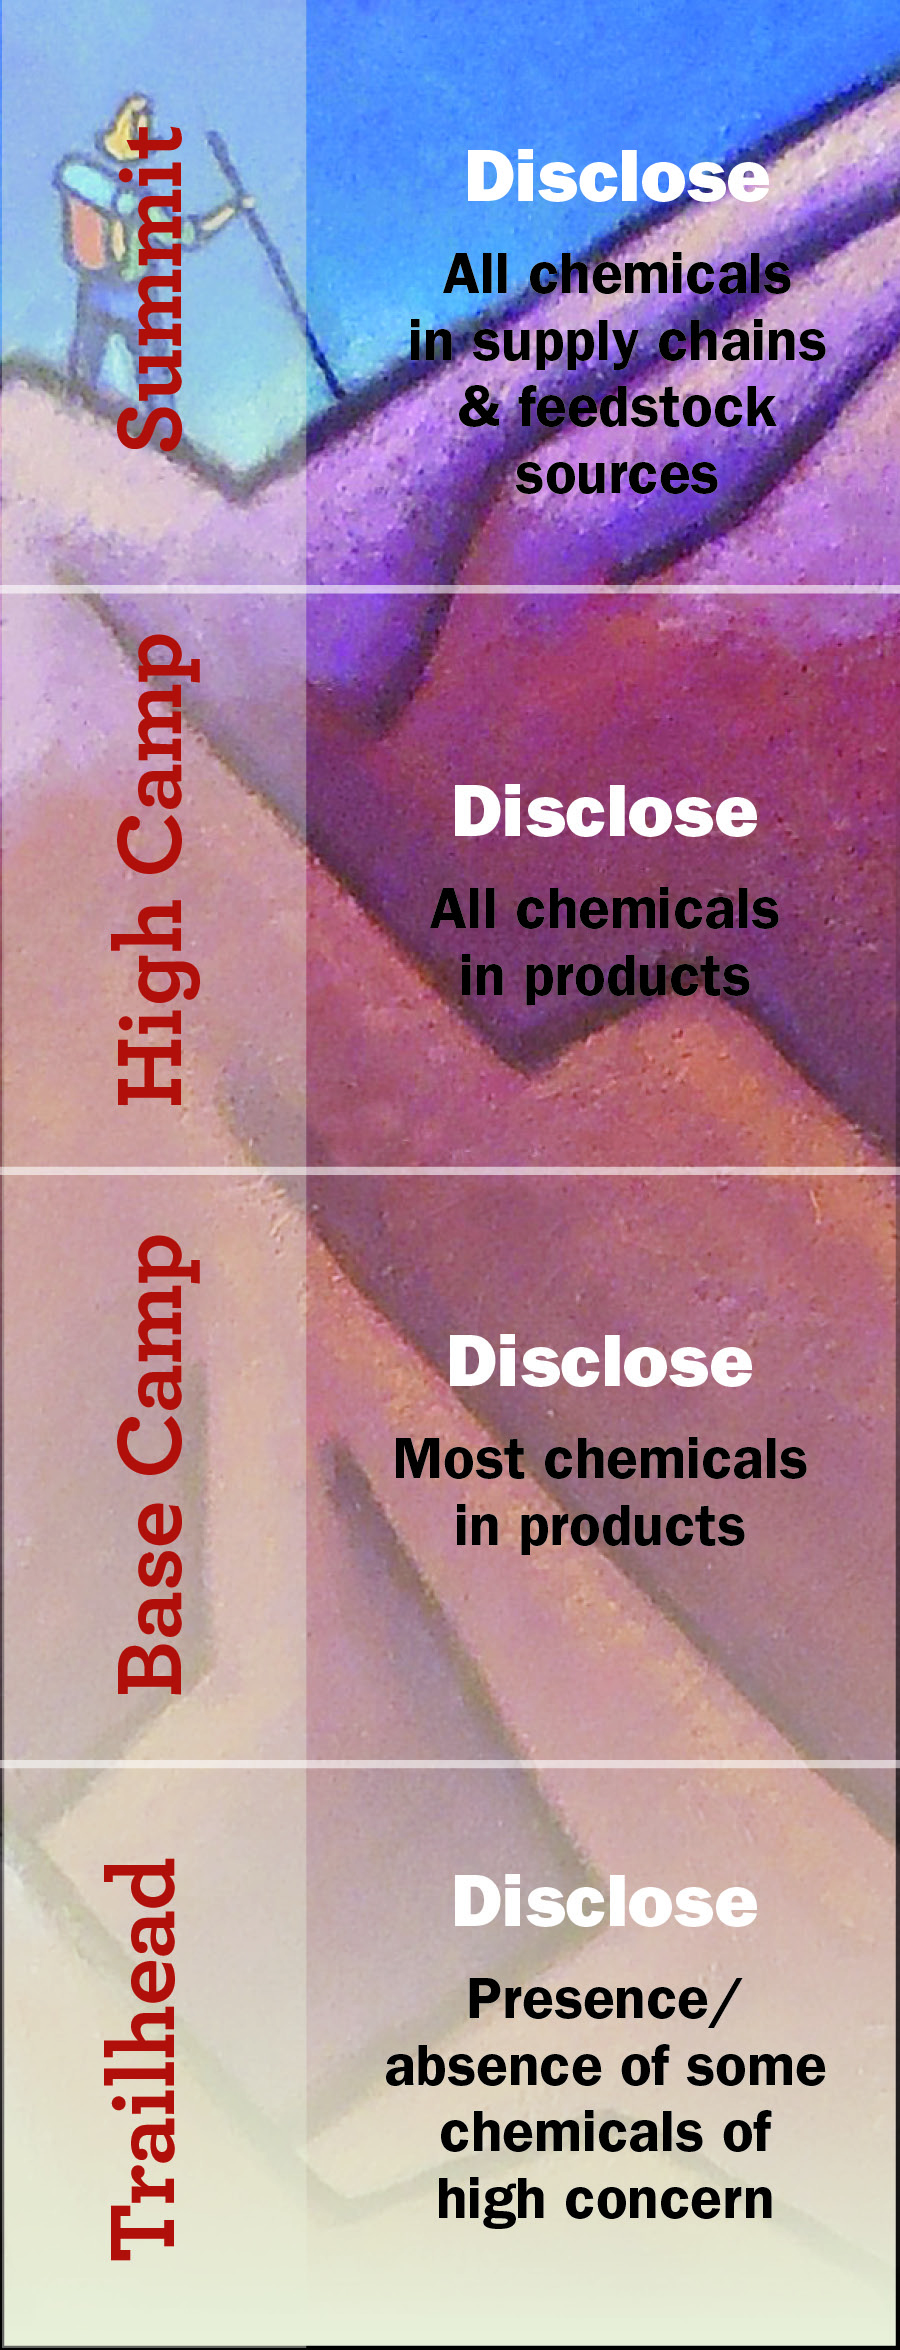 Credit: BizNGO Guide to Safer Chemicals